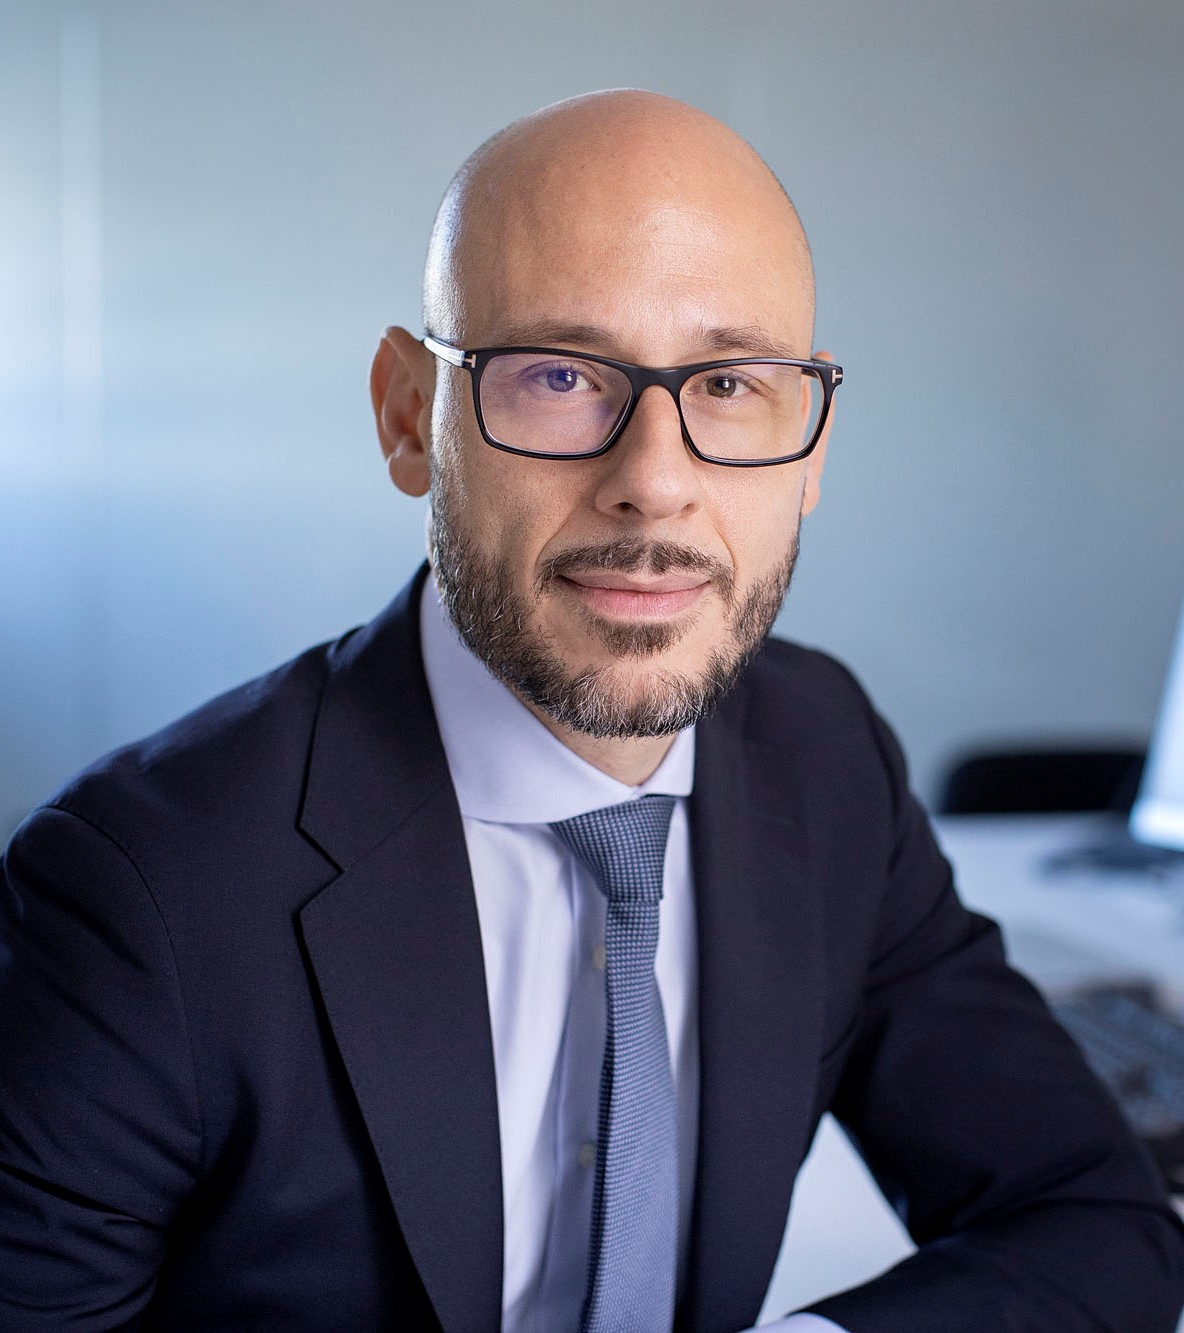 Raffaele Pace, engineering vice president of operations di Stevanato Group